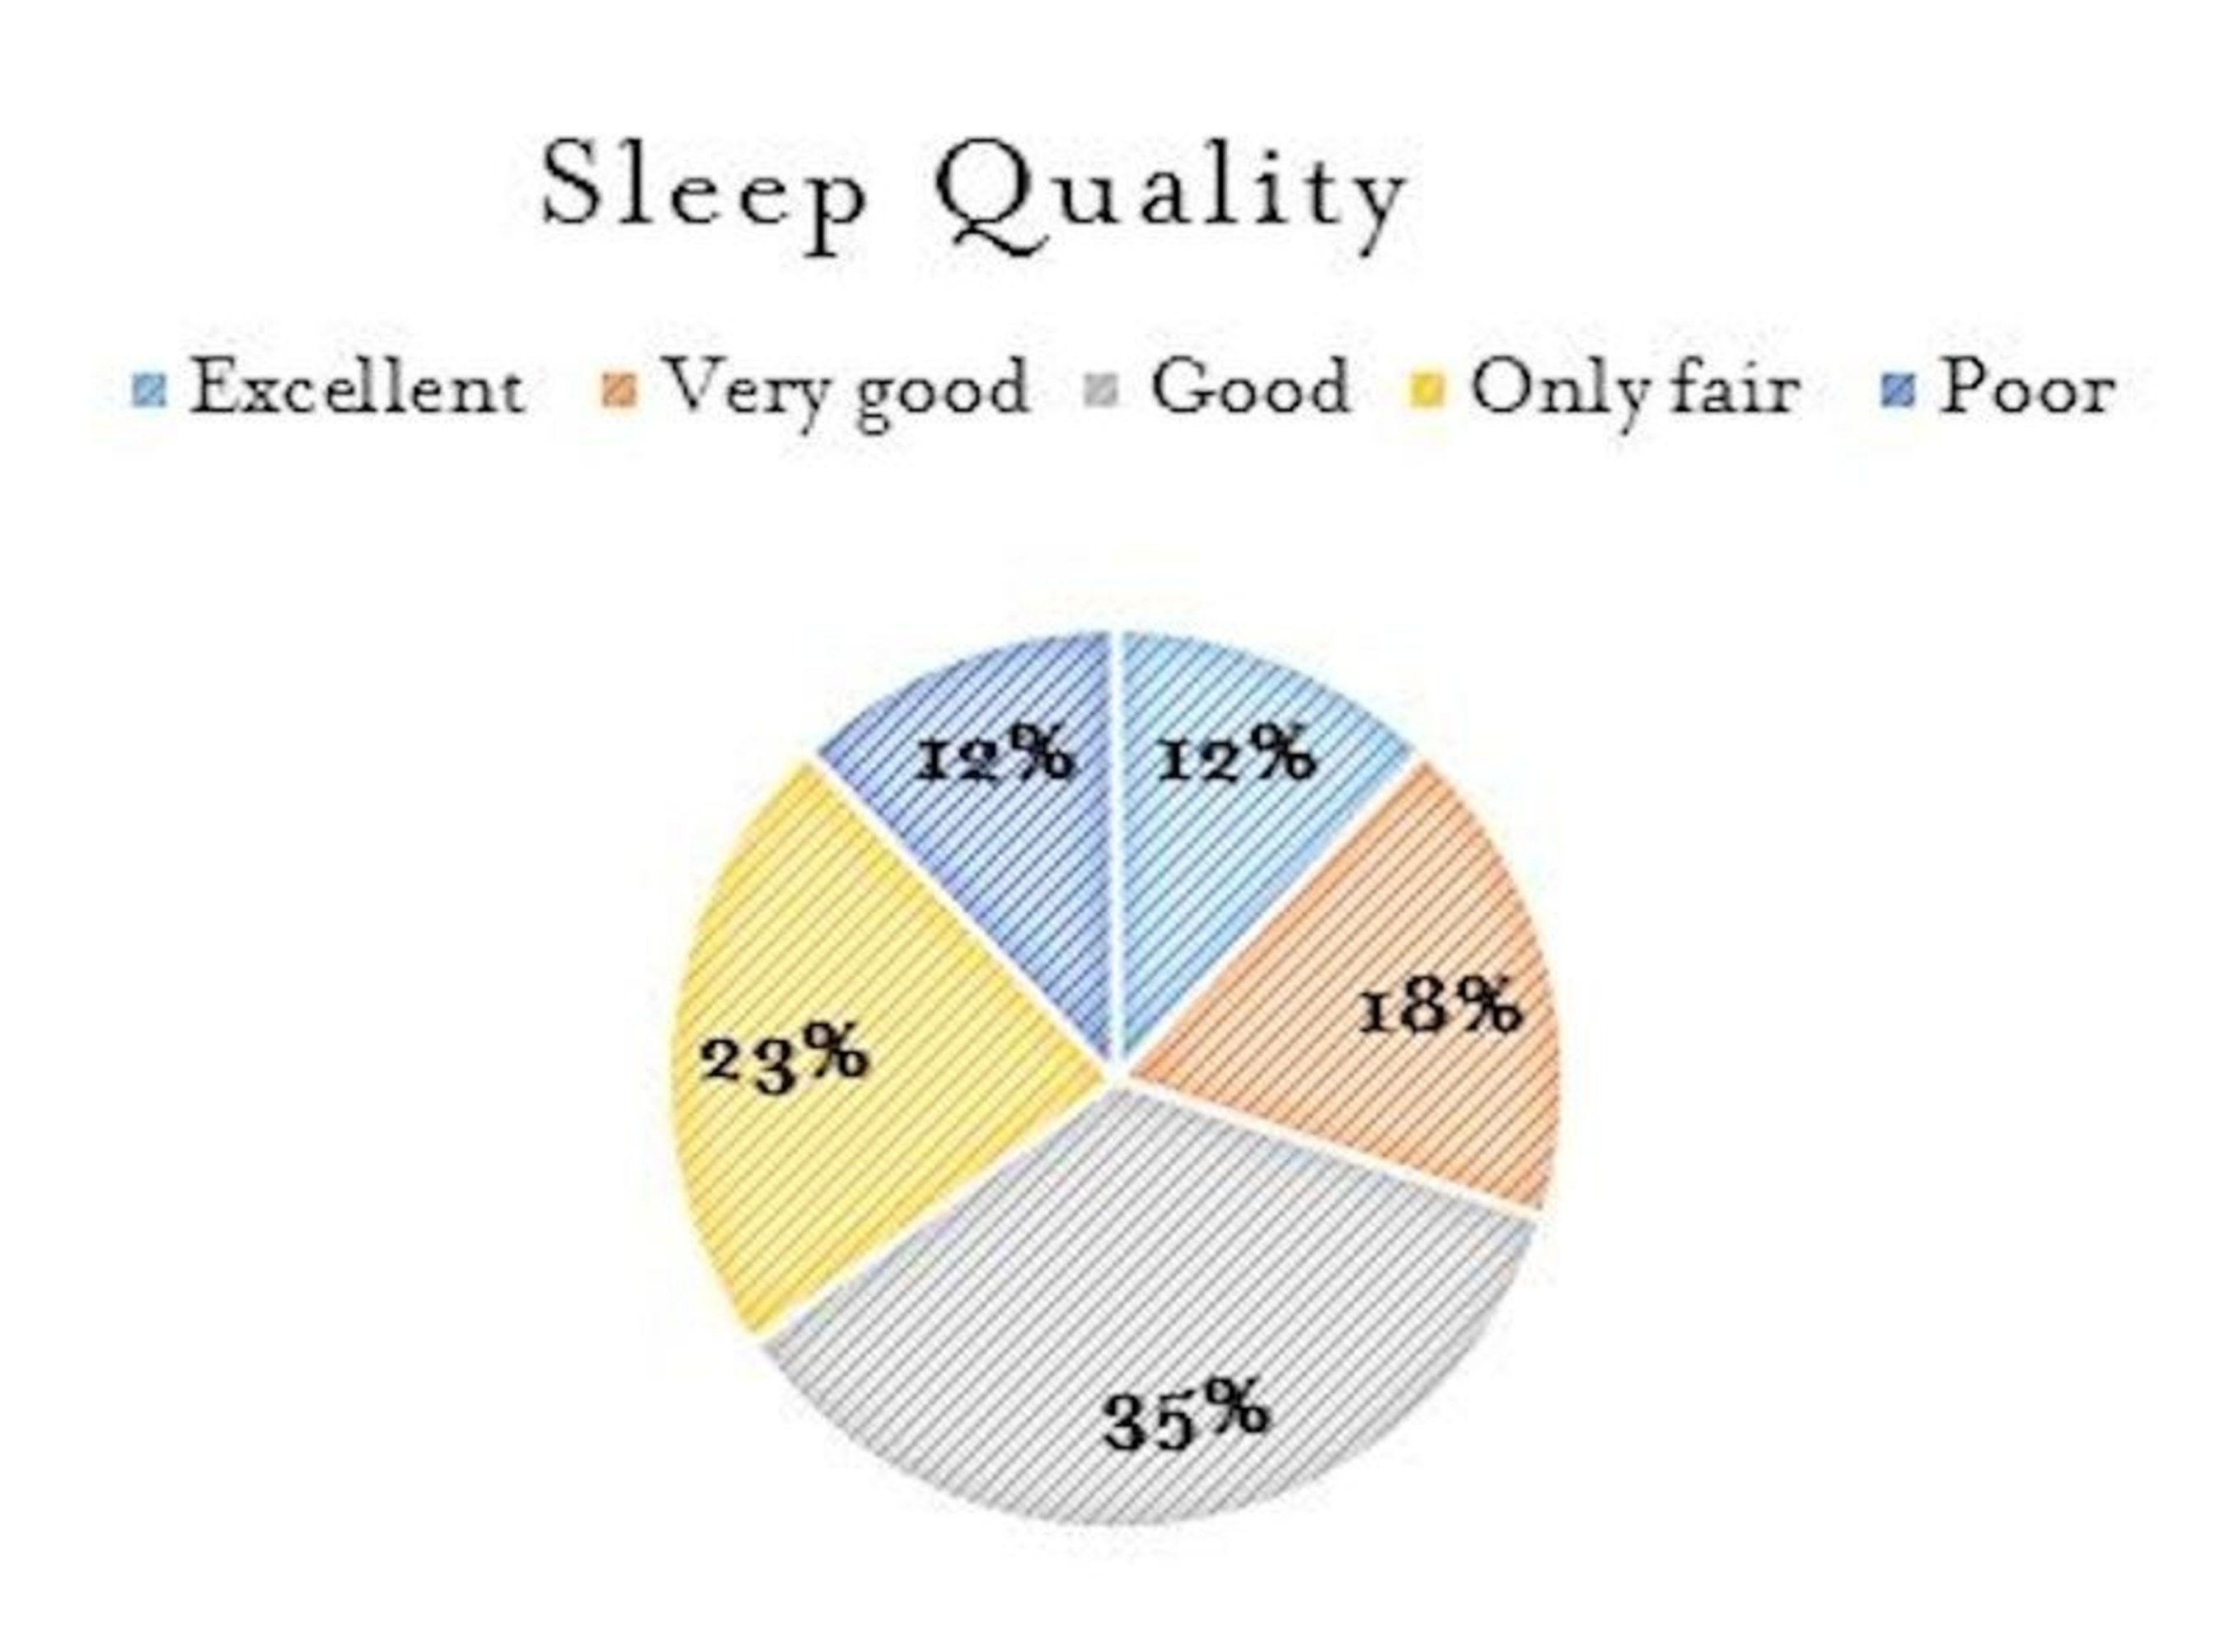 """Americans report sleeping an average of 7 hours and 36 minutes a night. Despite sleeping within the recommended number of hours a night, 35 percent of Americans report sleep quality as """"poor"""" or """"only fair."""""""